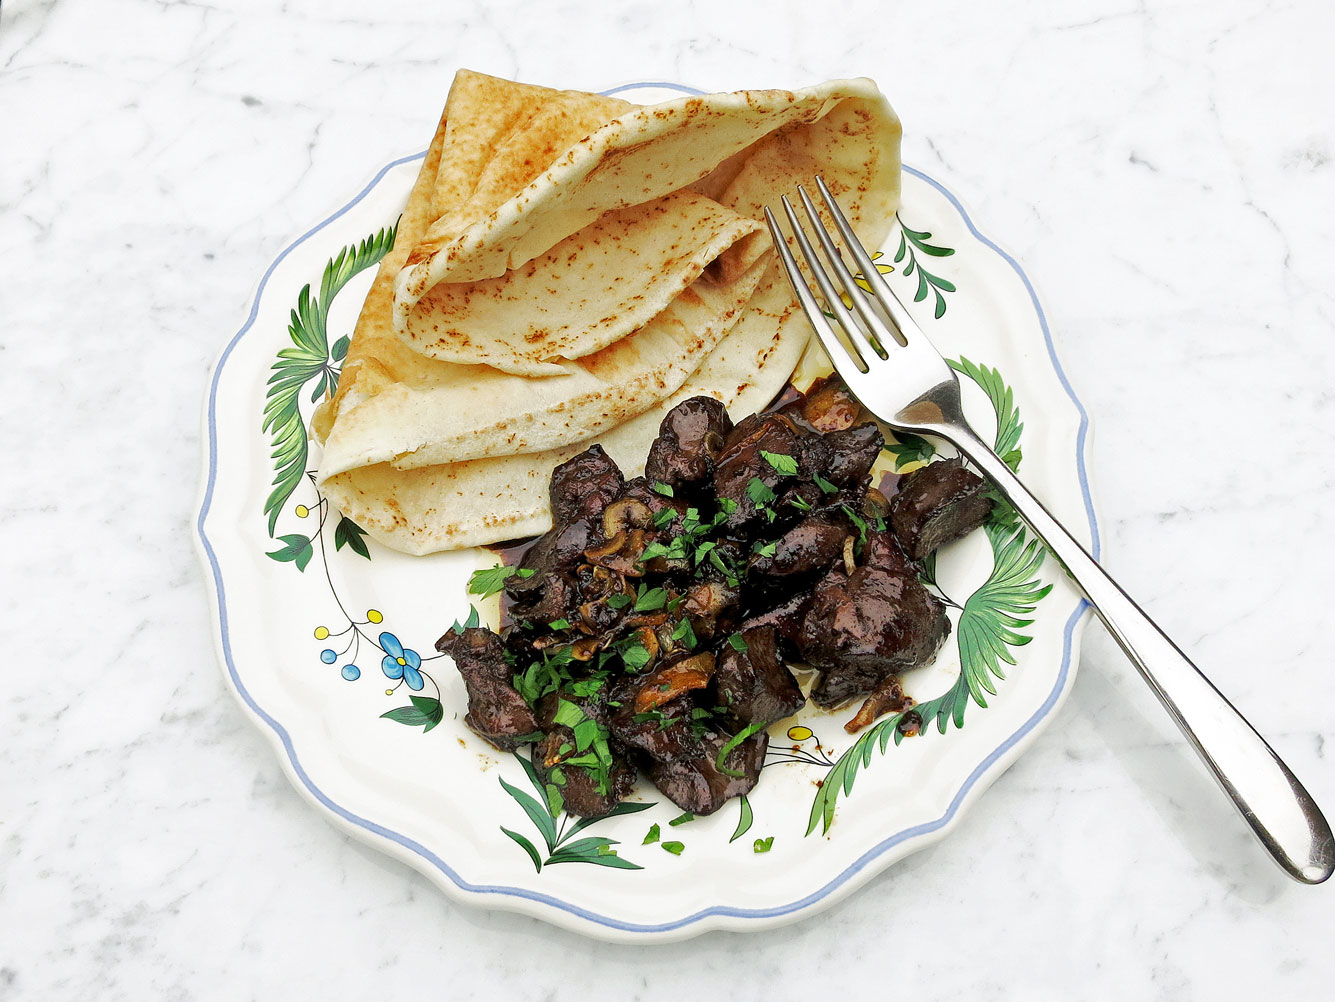 Seared organic chicken livers with pomegranate molasses